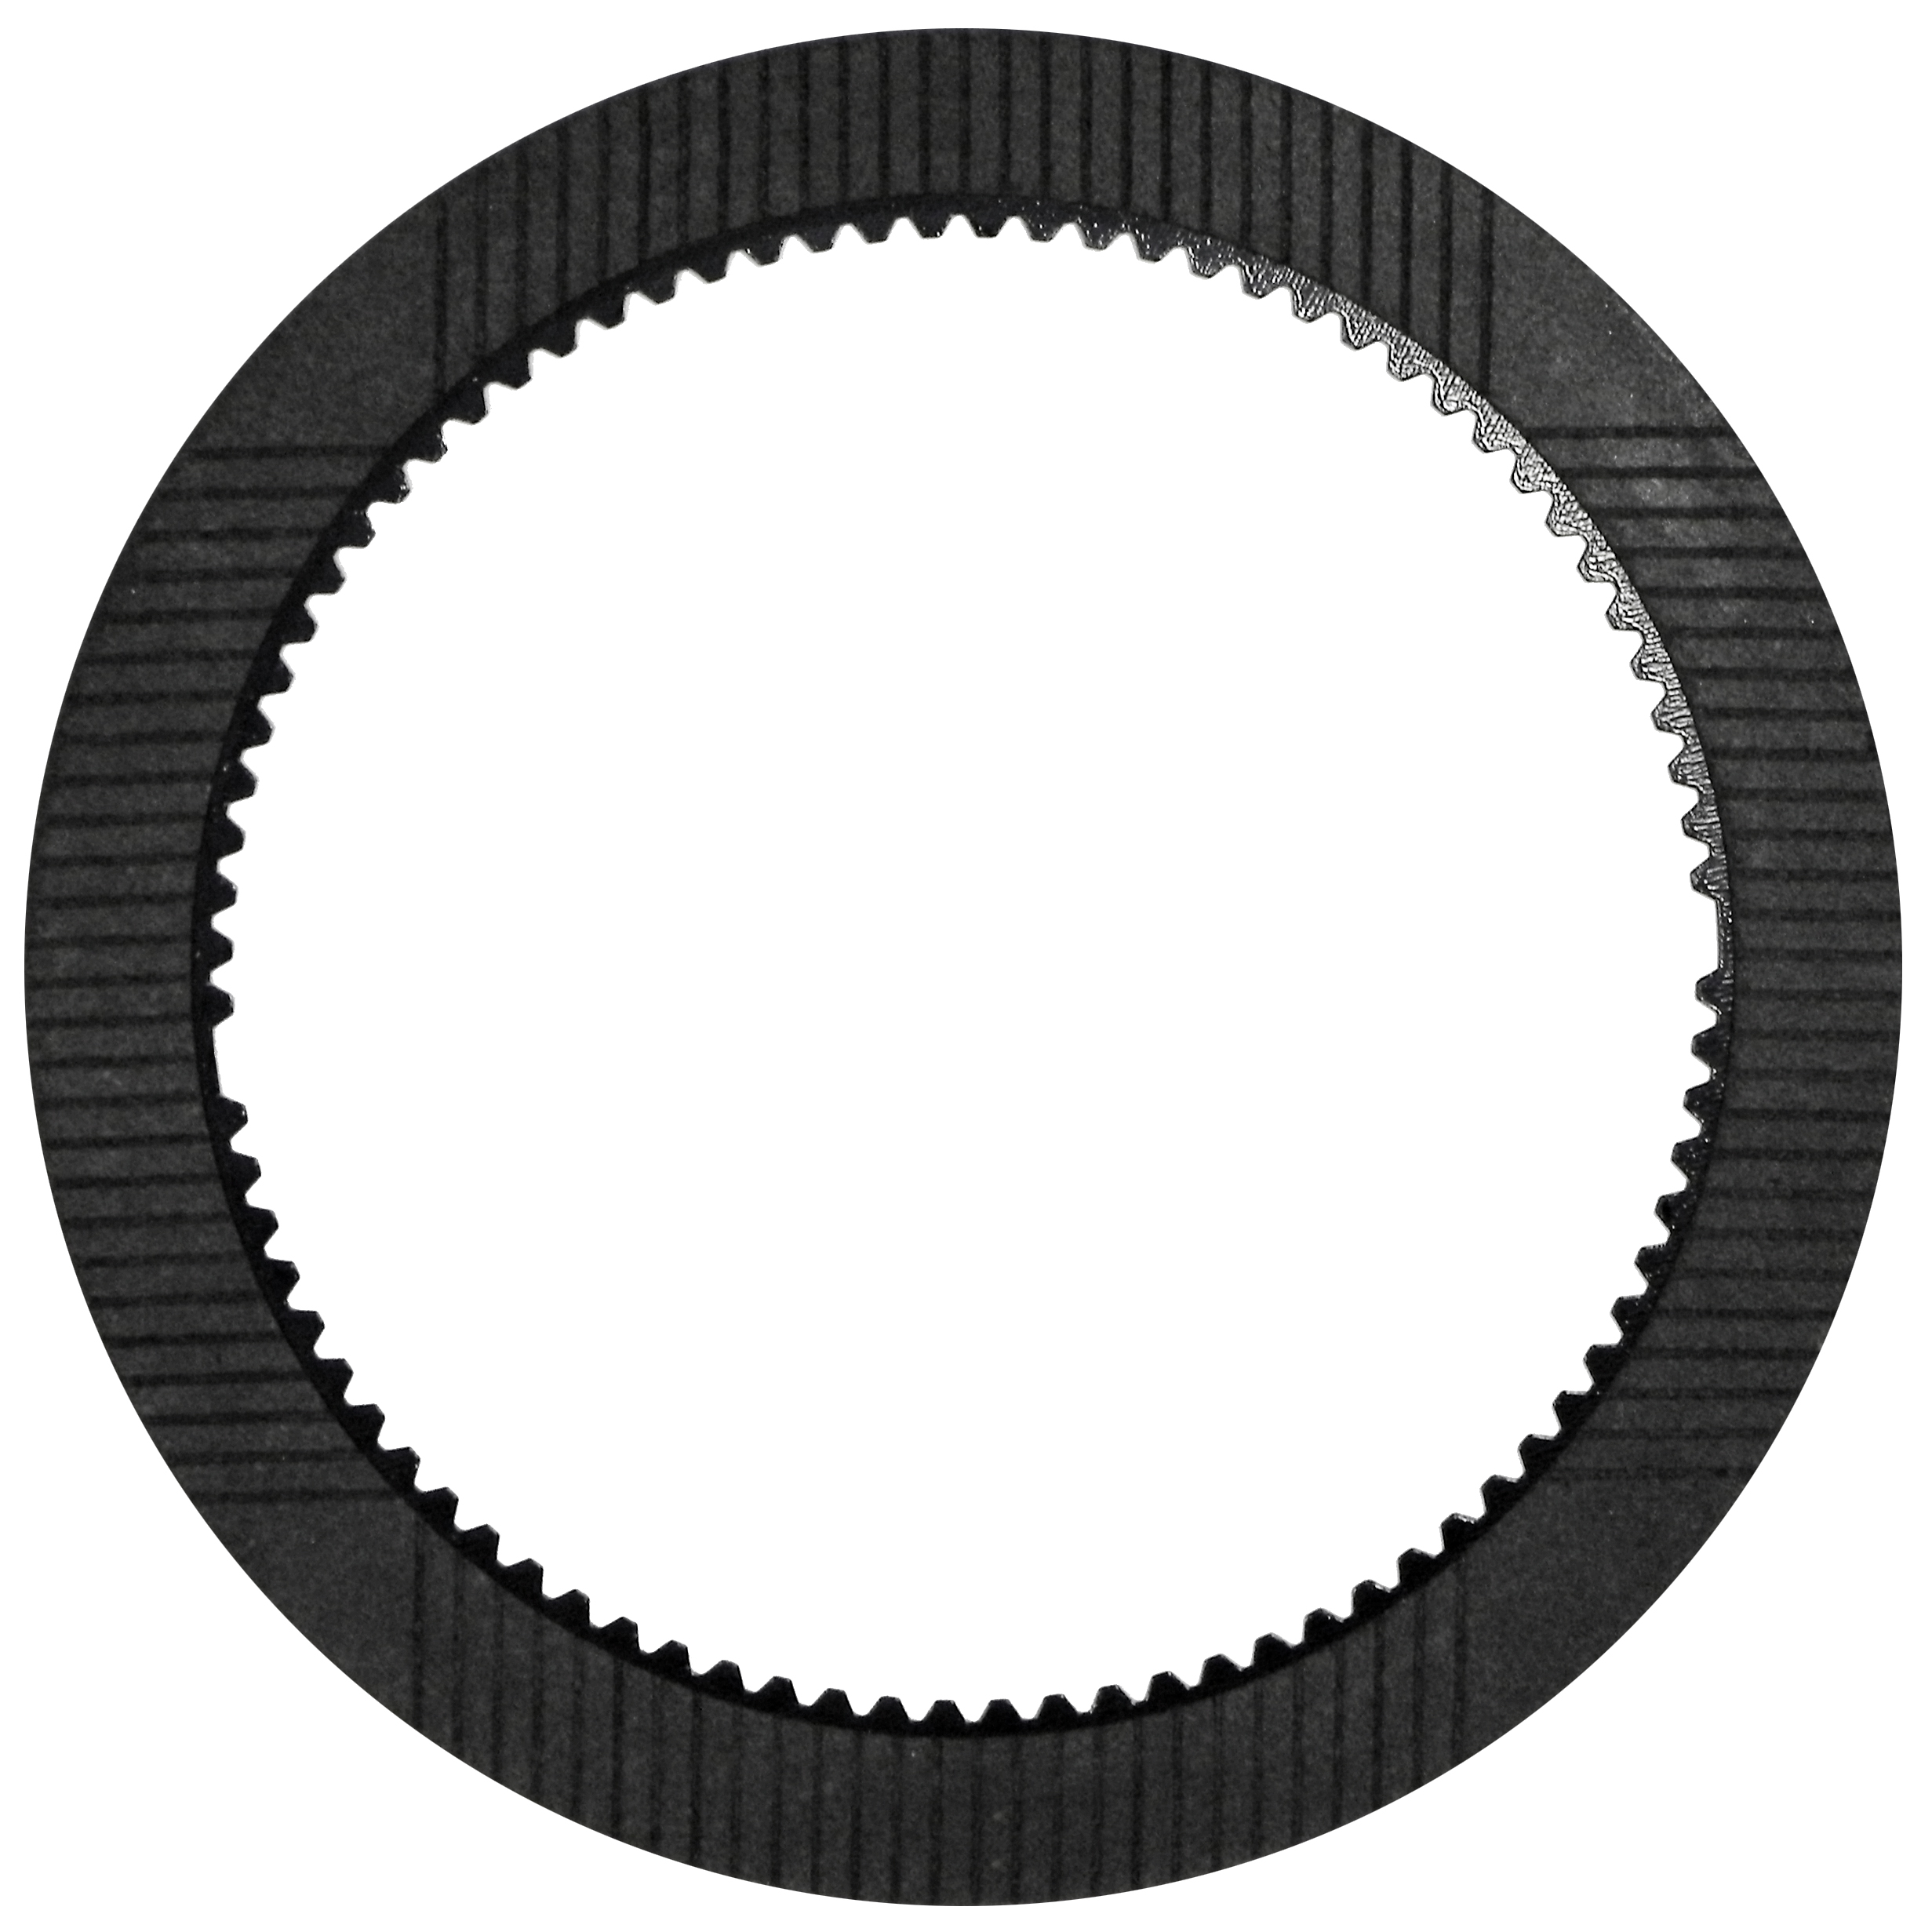 R810355 | 2000-ON Friction Clutch Plate OE Replacement C2